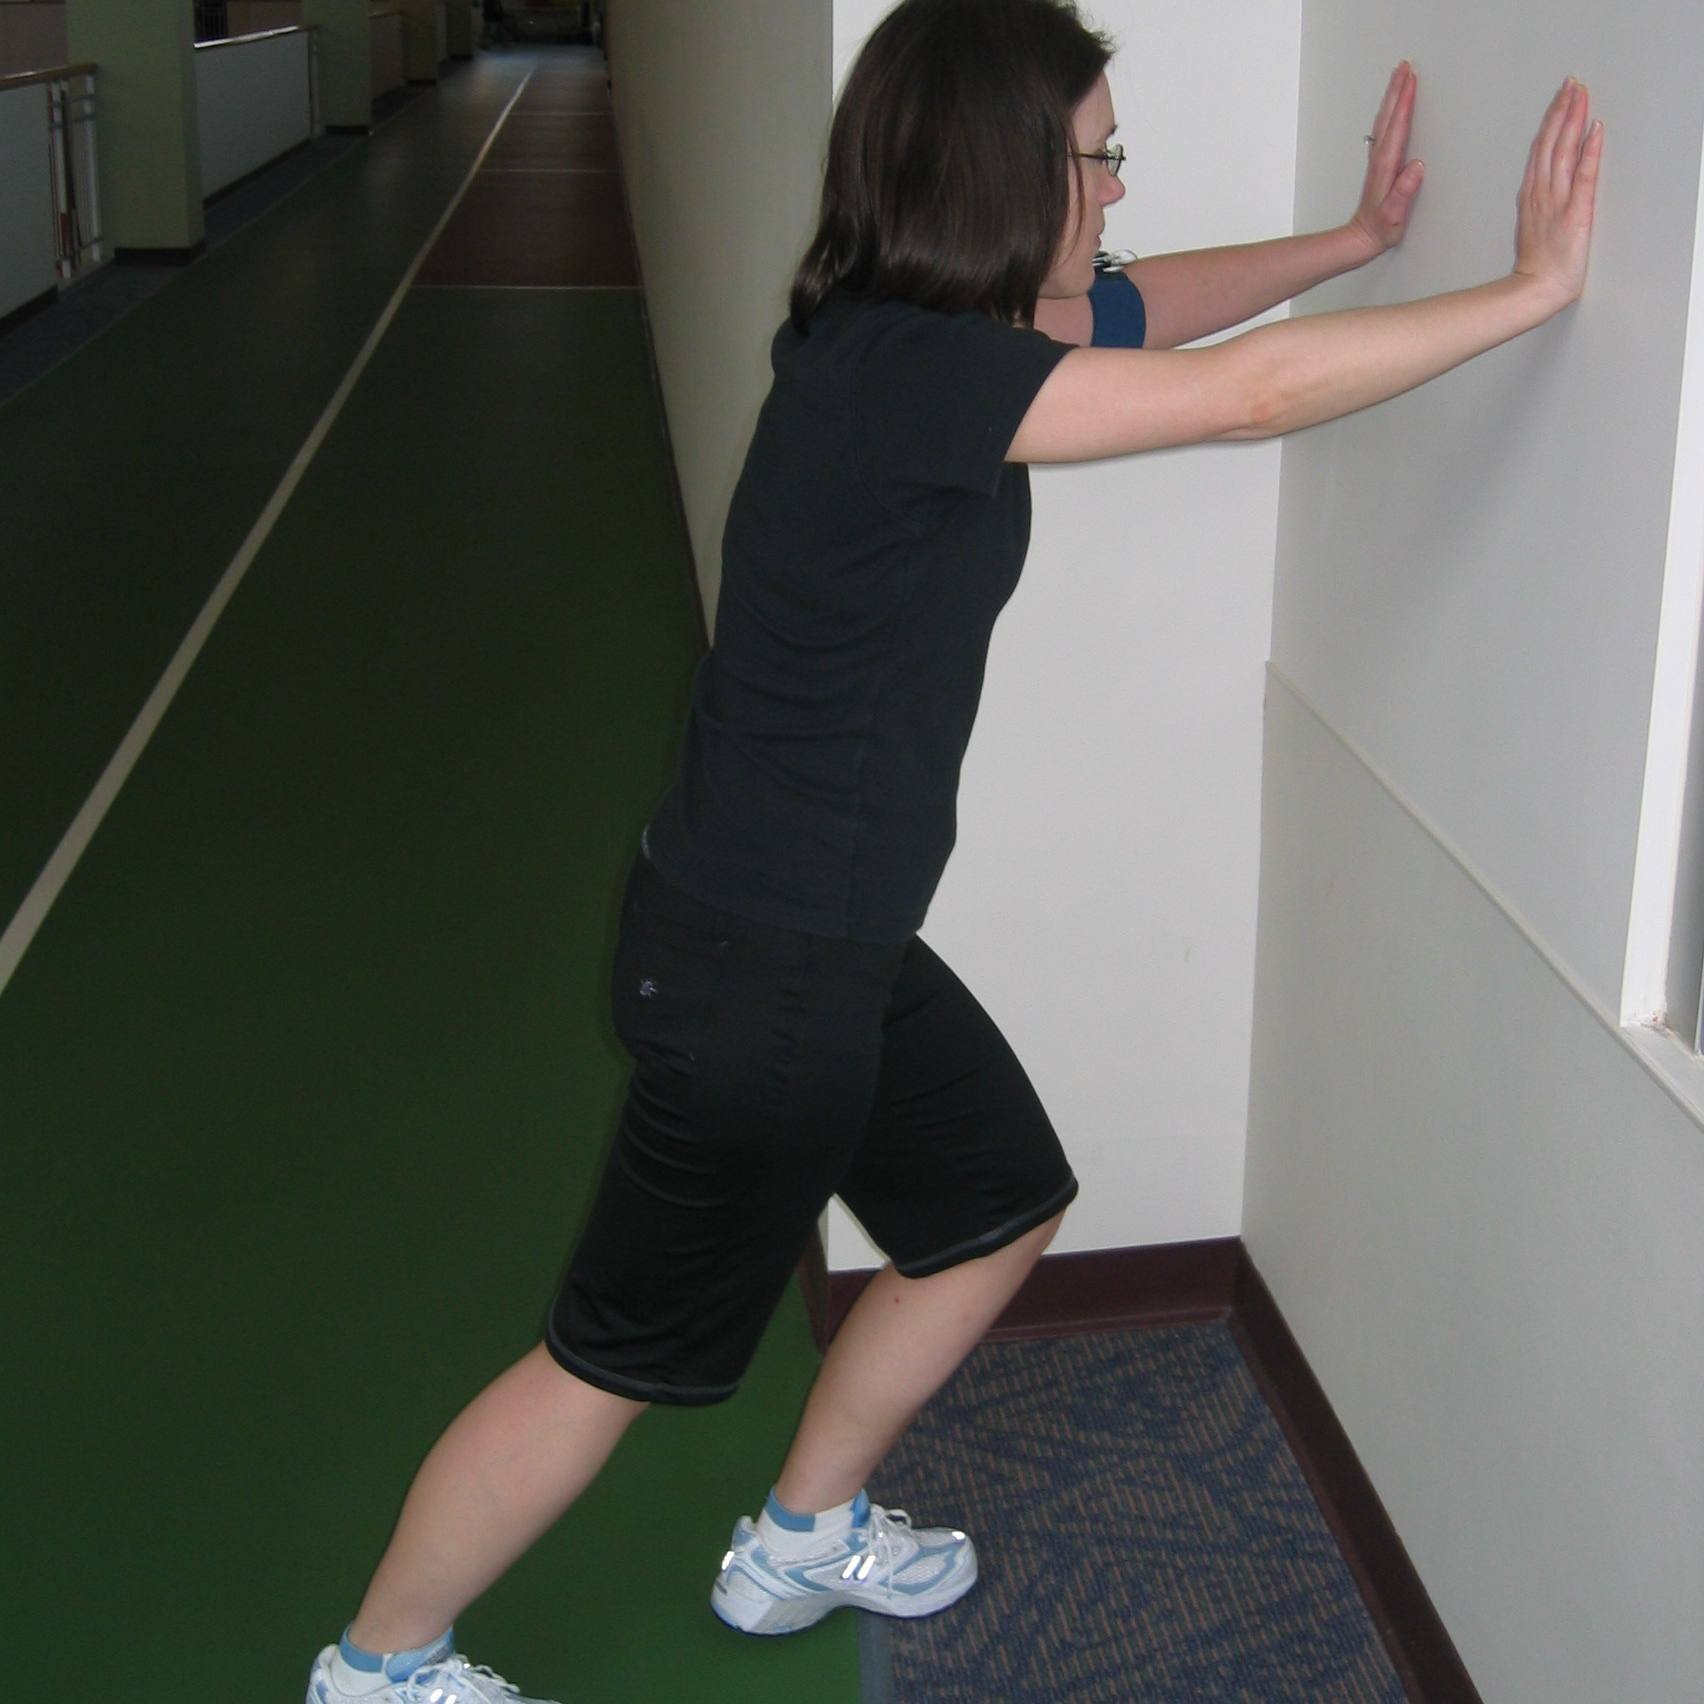 Bent knee wall stretch for the soleus muscle.